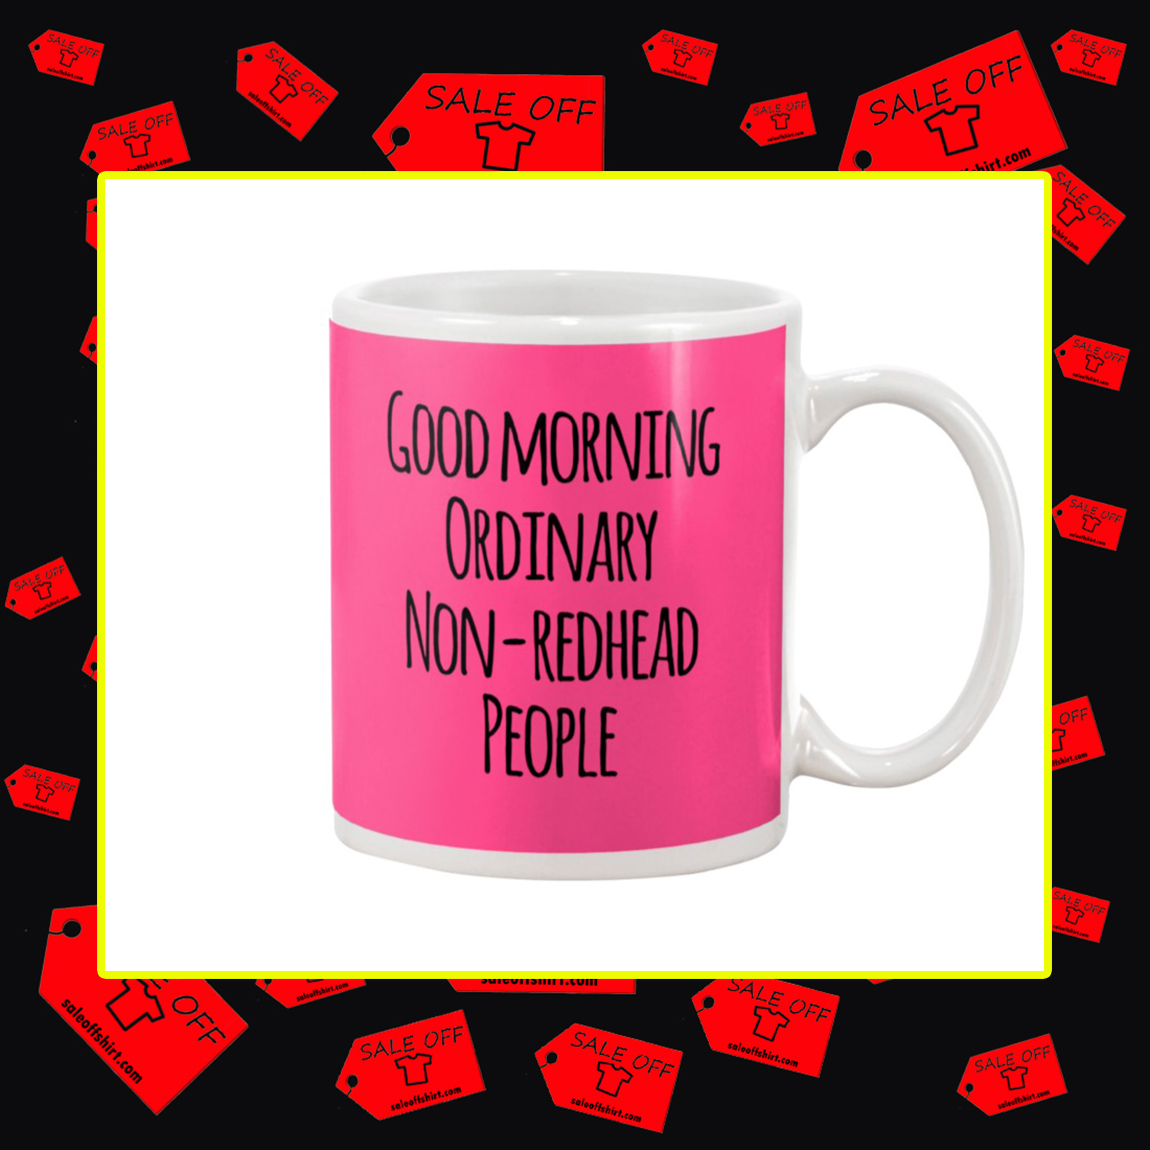 Good Morning Ordinary Non-Redhead People Mug- cyber pink